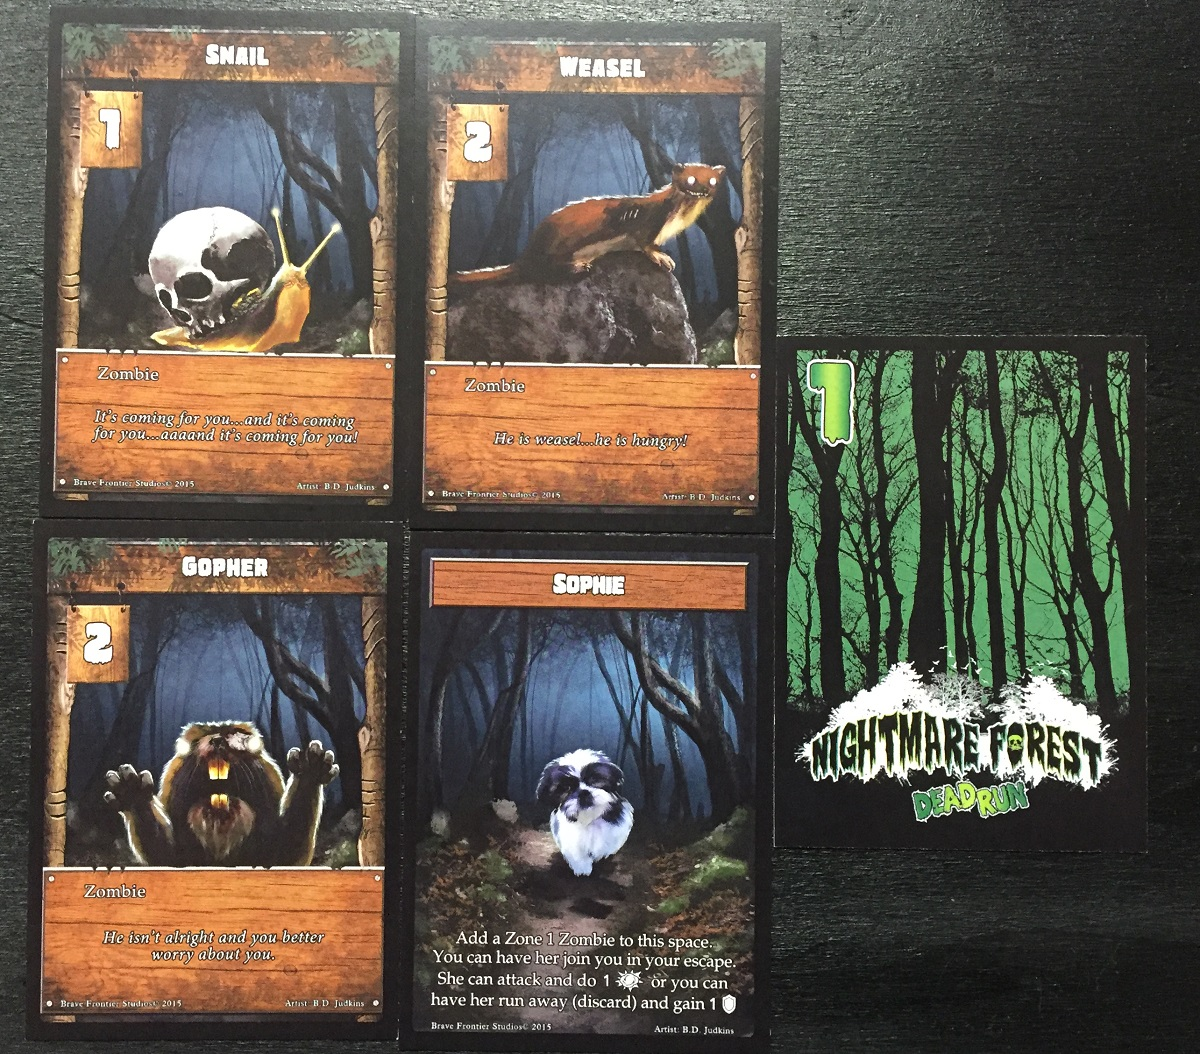 Zombie-Blasting Merit Badges: A Review of Nightmare Forest